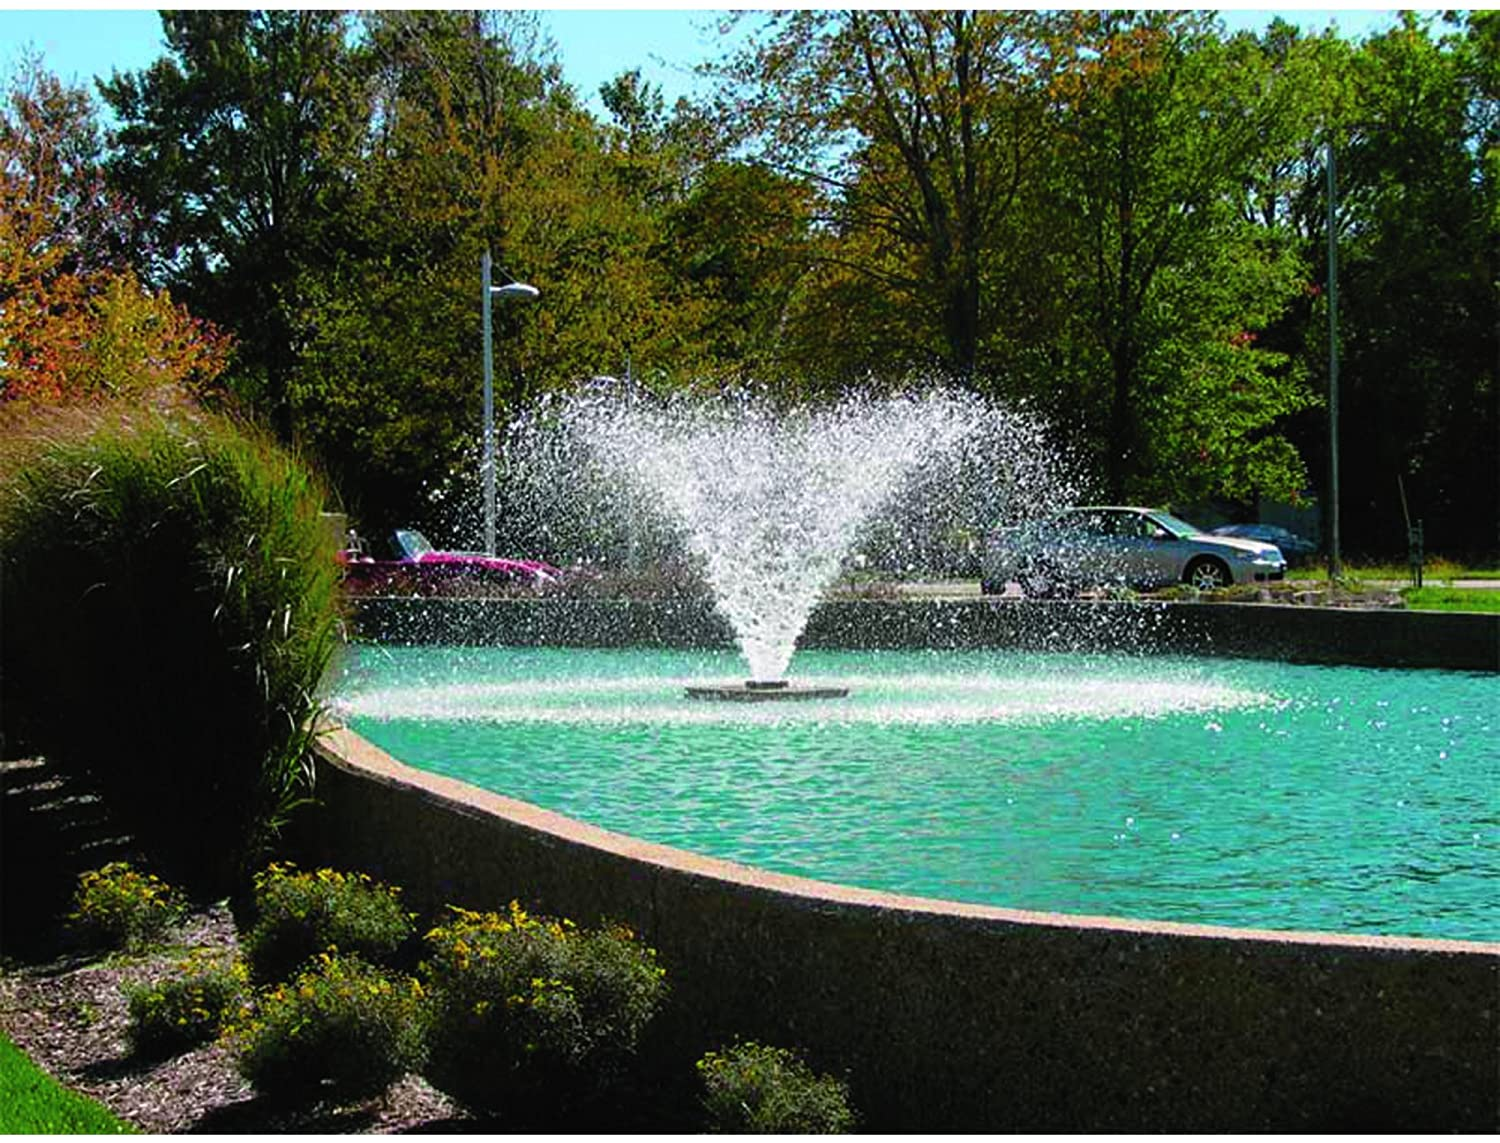 Best Pond And Pool Fountain Review Guide For 2021-2022